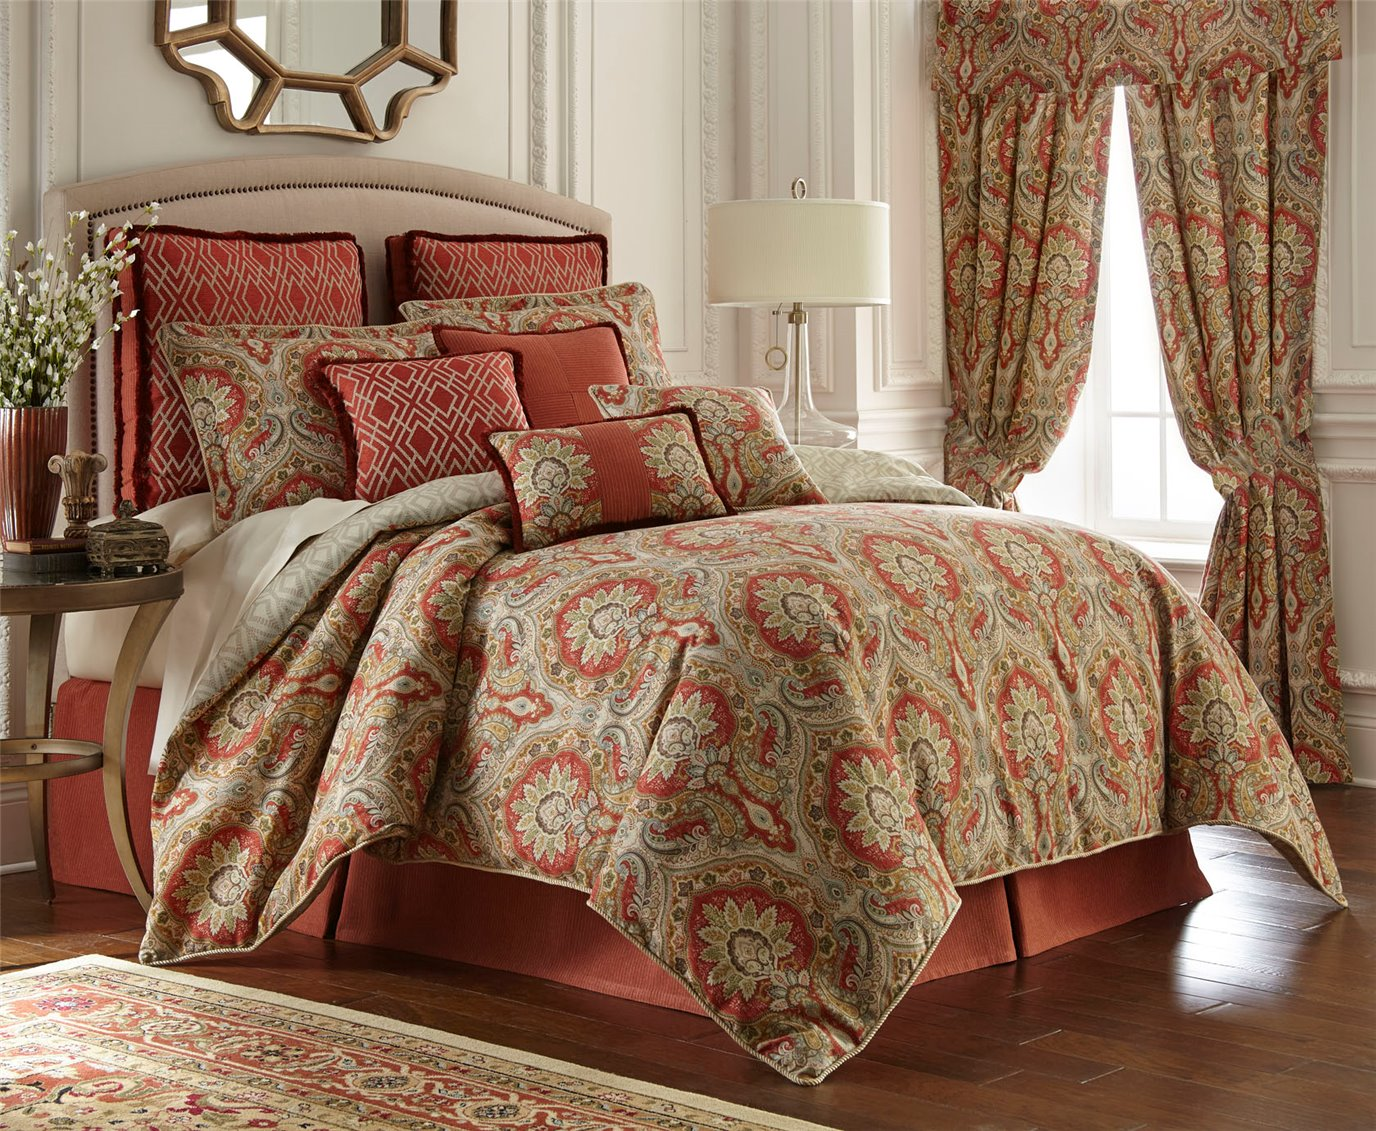 Harrogate Paisley 4 Piece King Comforter Set